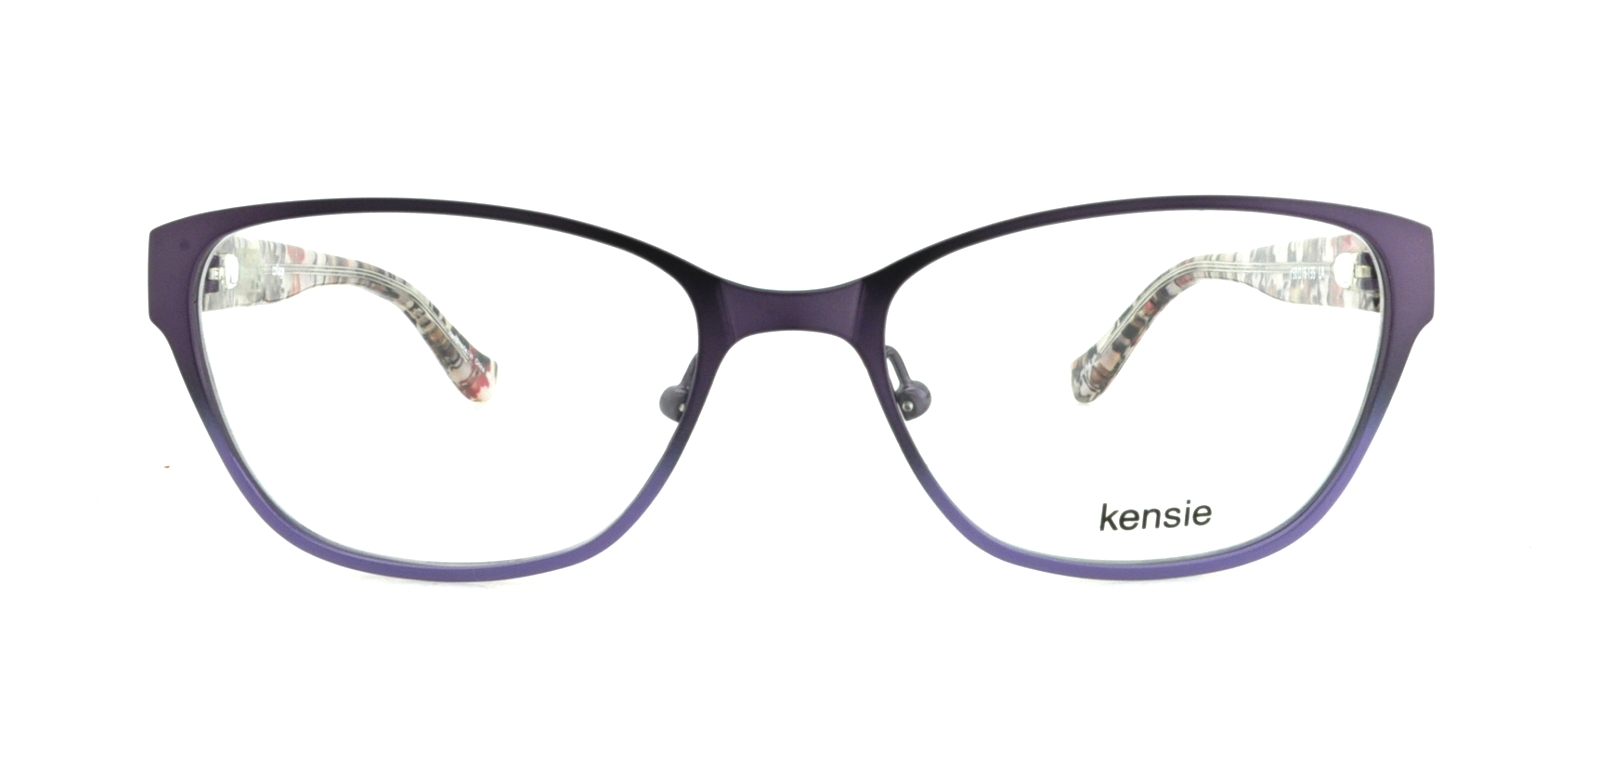 Designer Frames Outlet. Kensie COLLAGE